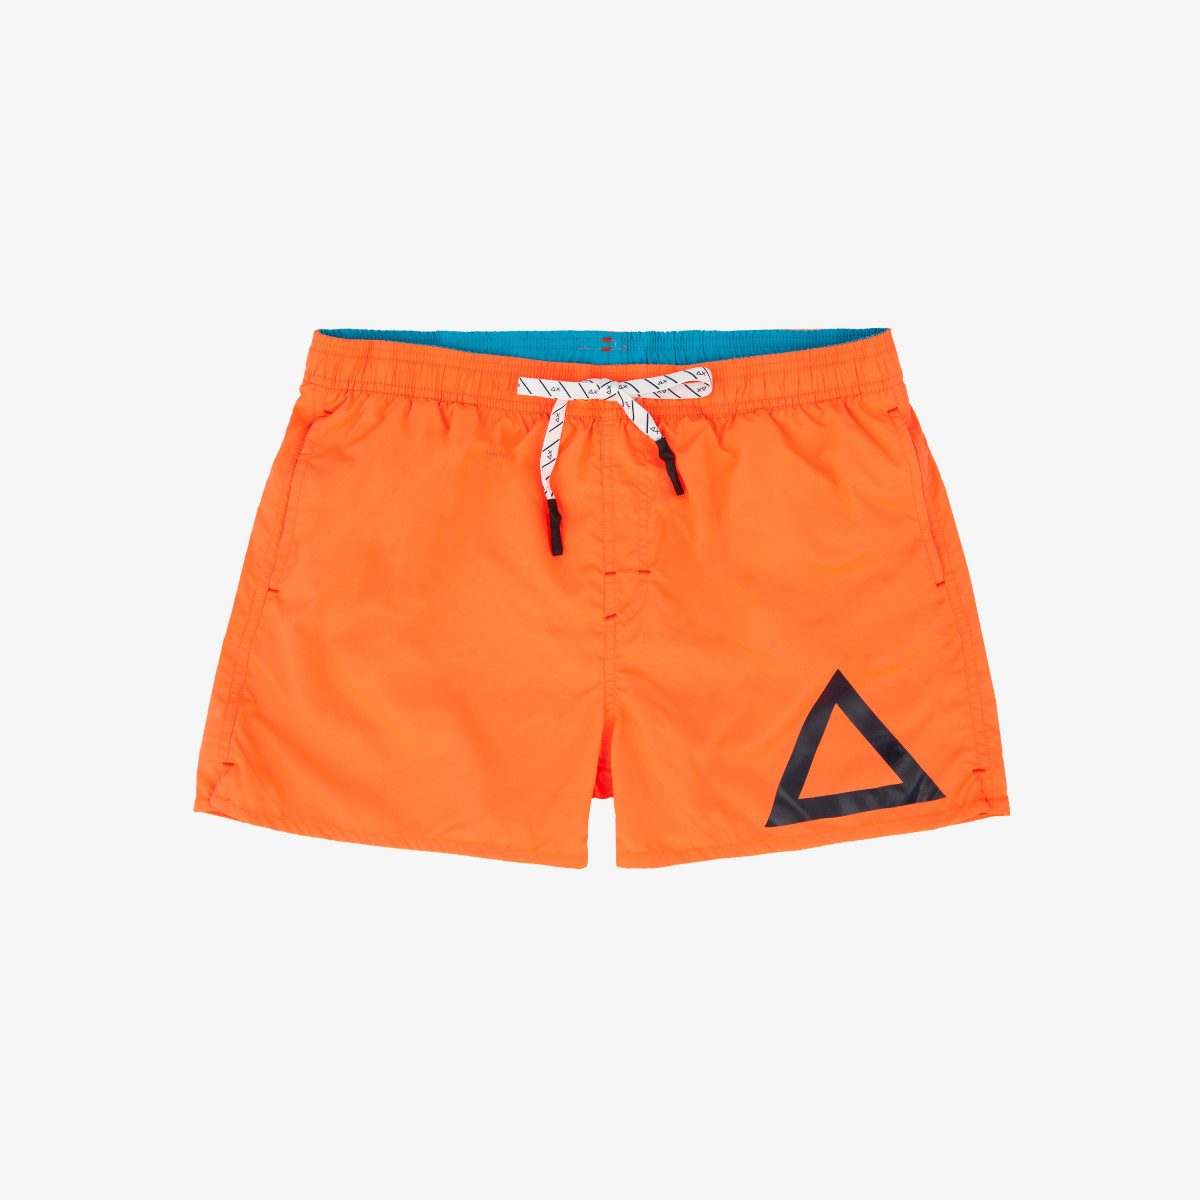 SWIM PANT SOLID BIG LOGO ORANGE FLUO